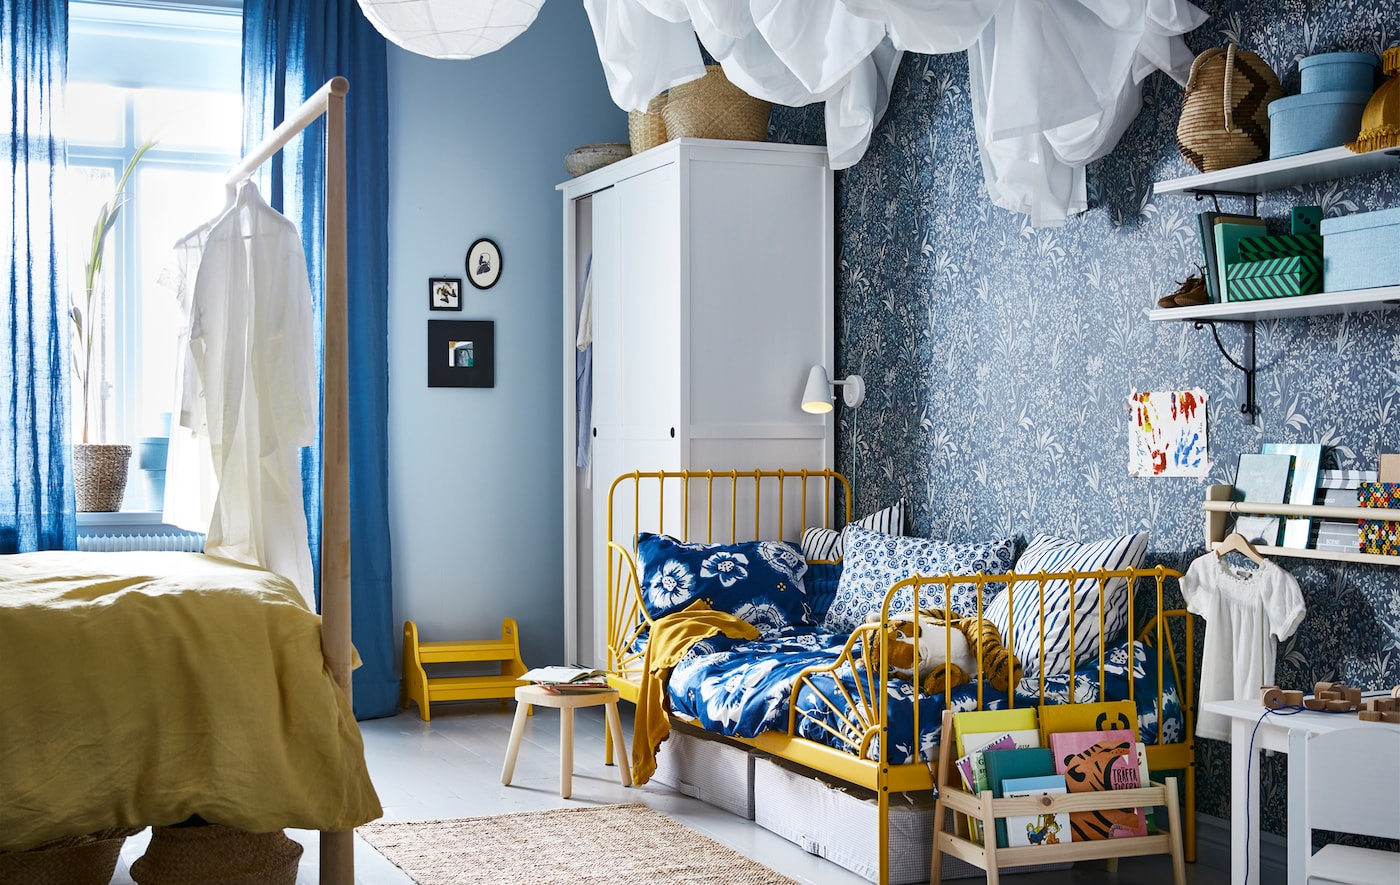 A bedroom with blue and yellow color scheme, with an adult bed on one side and child's bed on the other side.